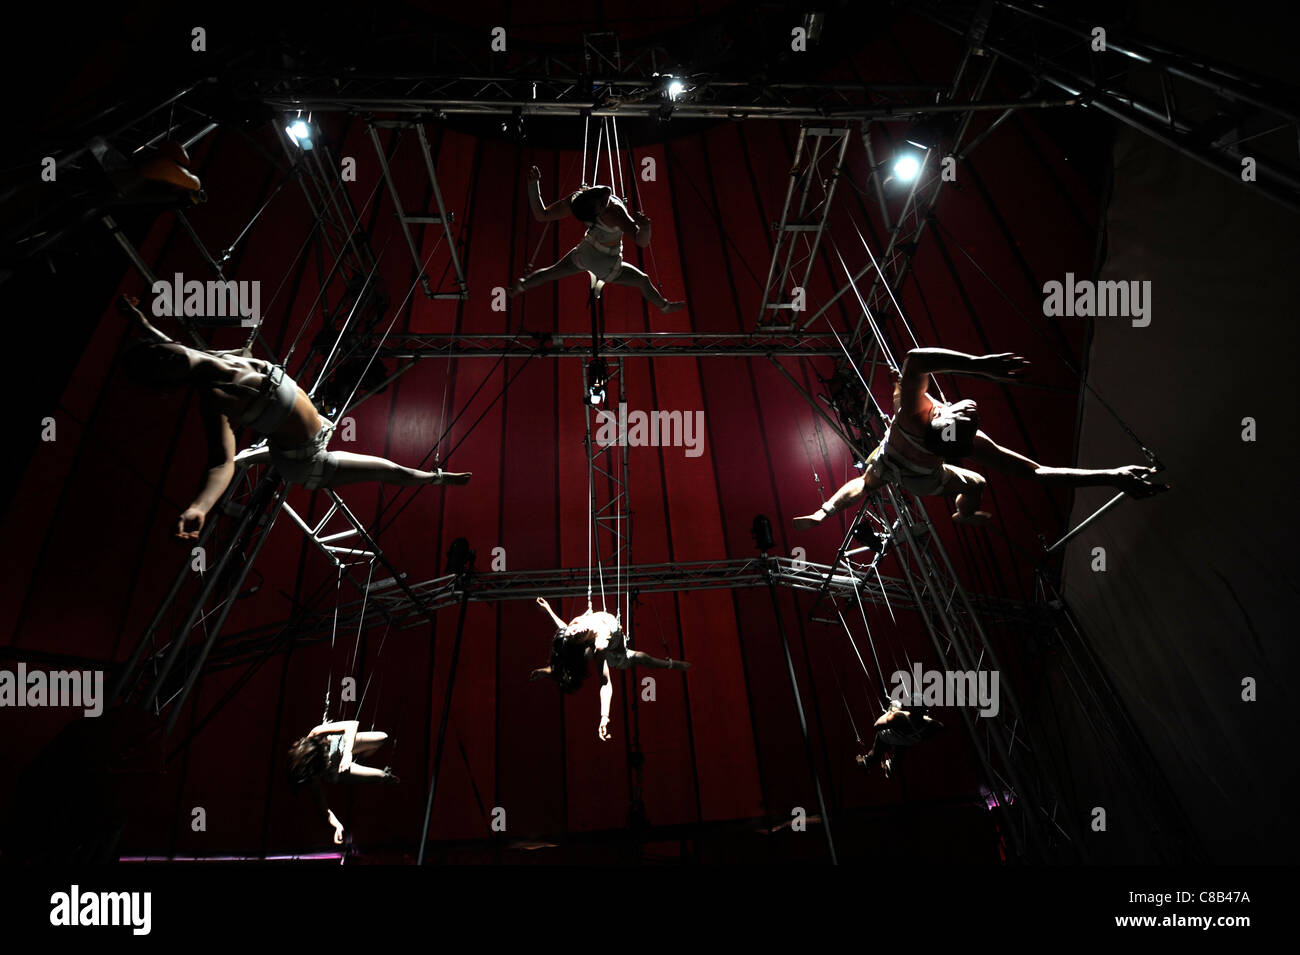 Suspended high wire artists practising with the Nofitstate Circus on tour in South Wales UK - Stock Image